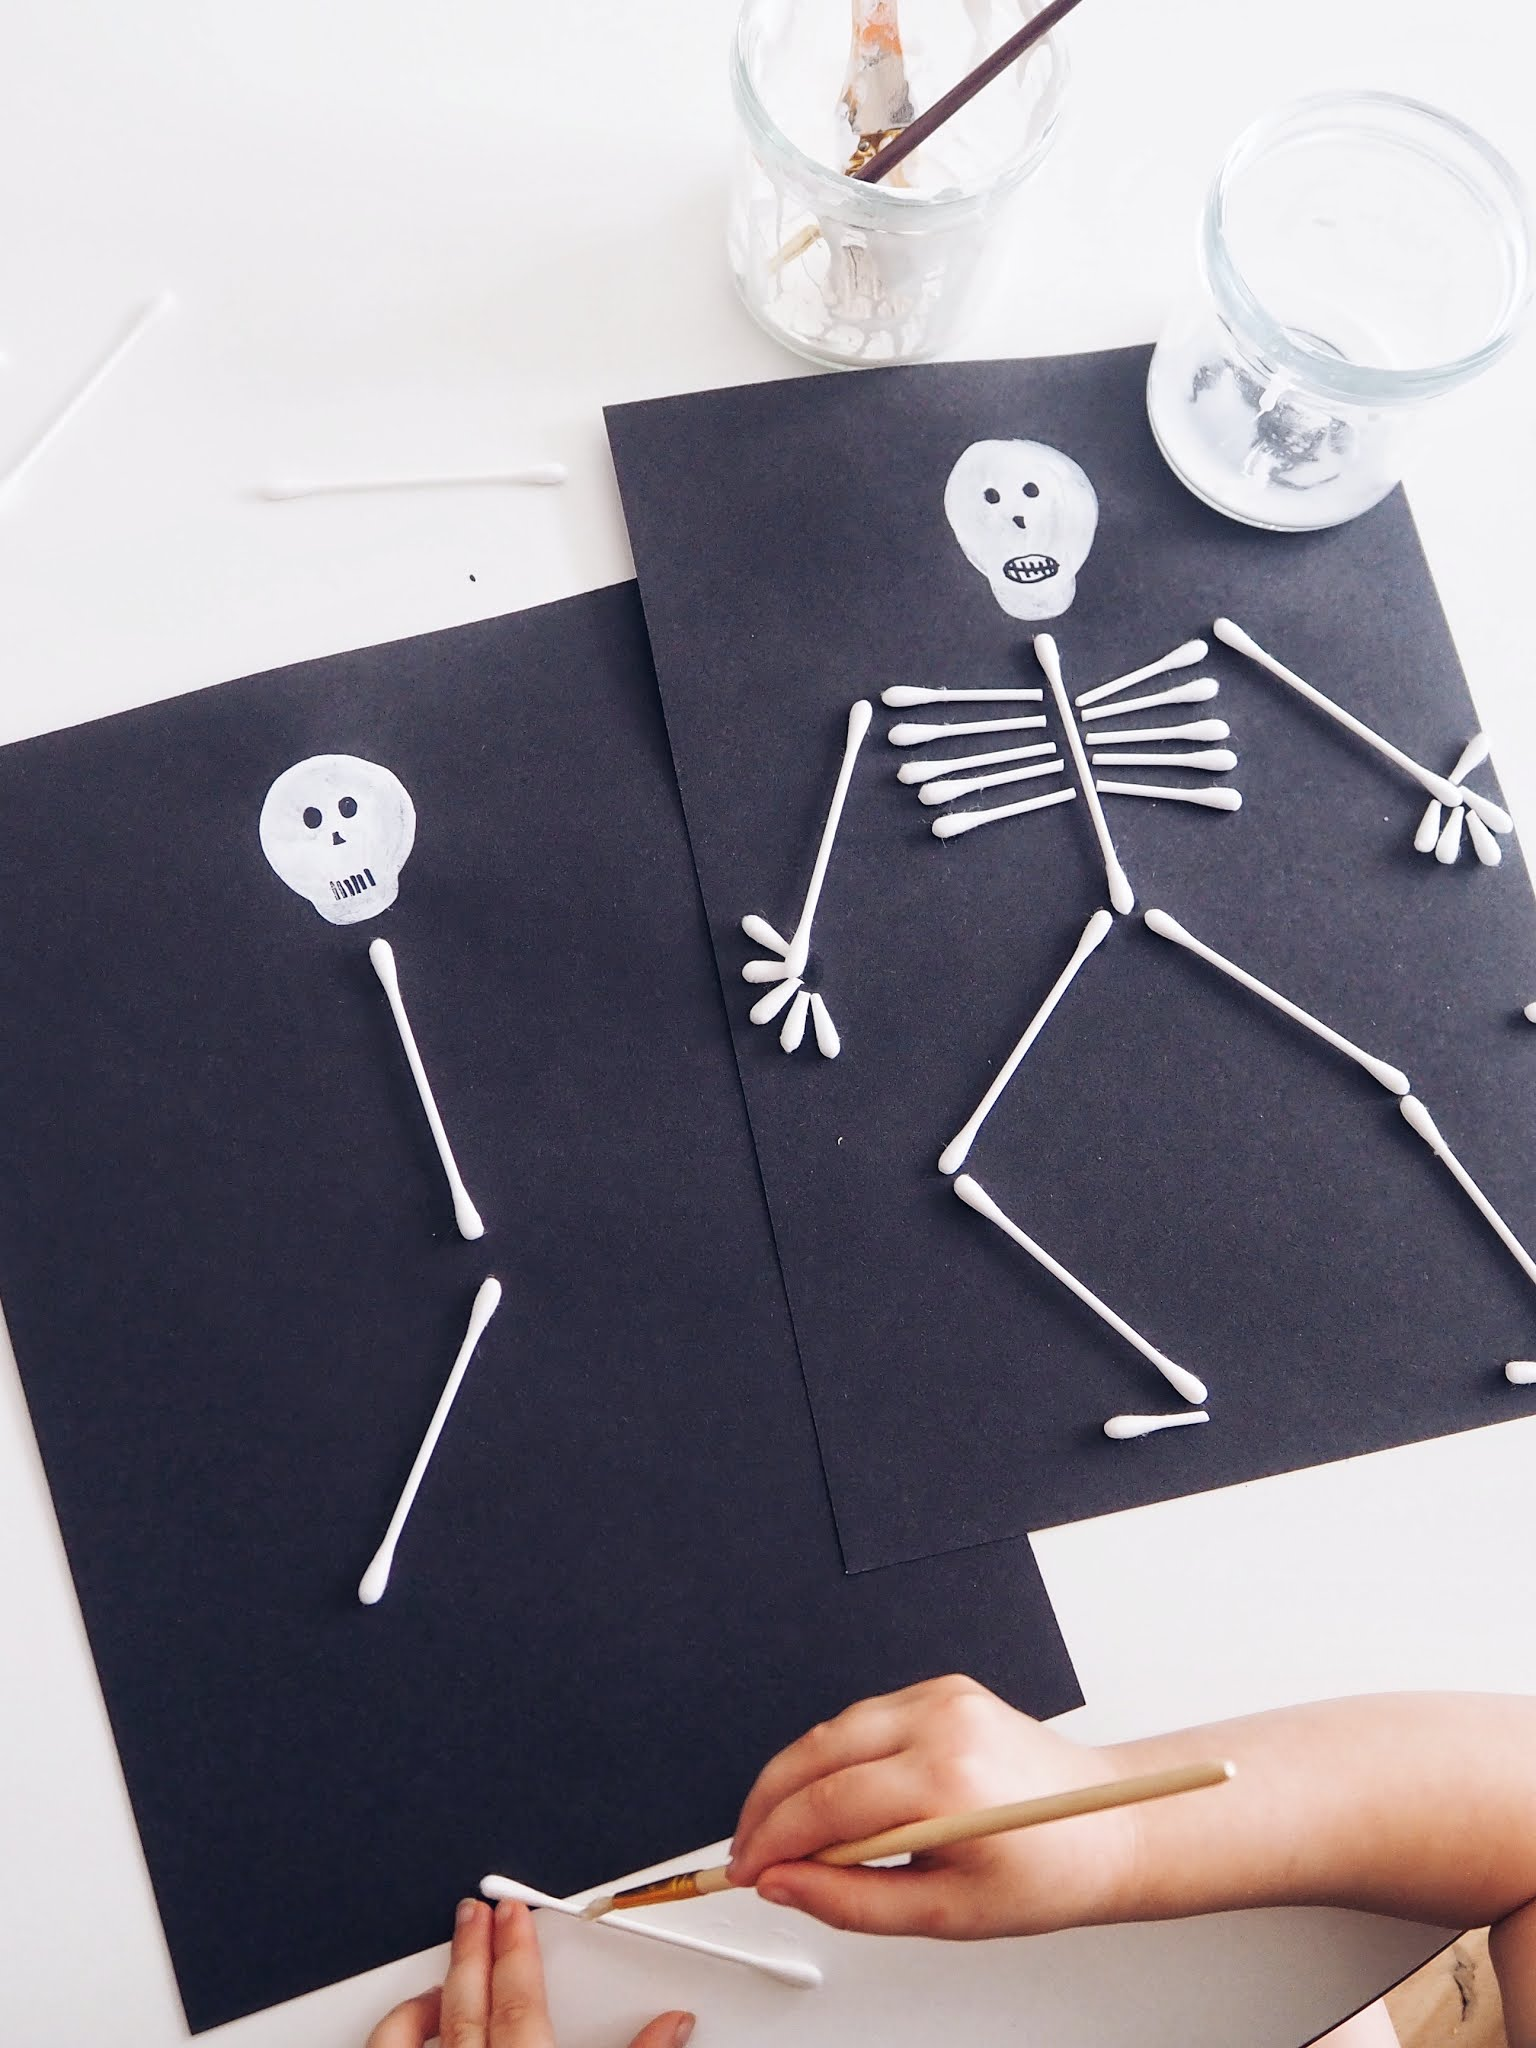 Cotton Bud Halloween Craft